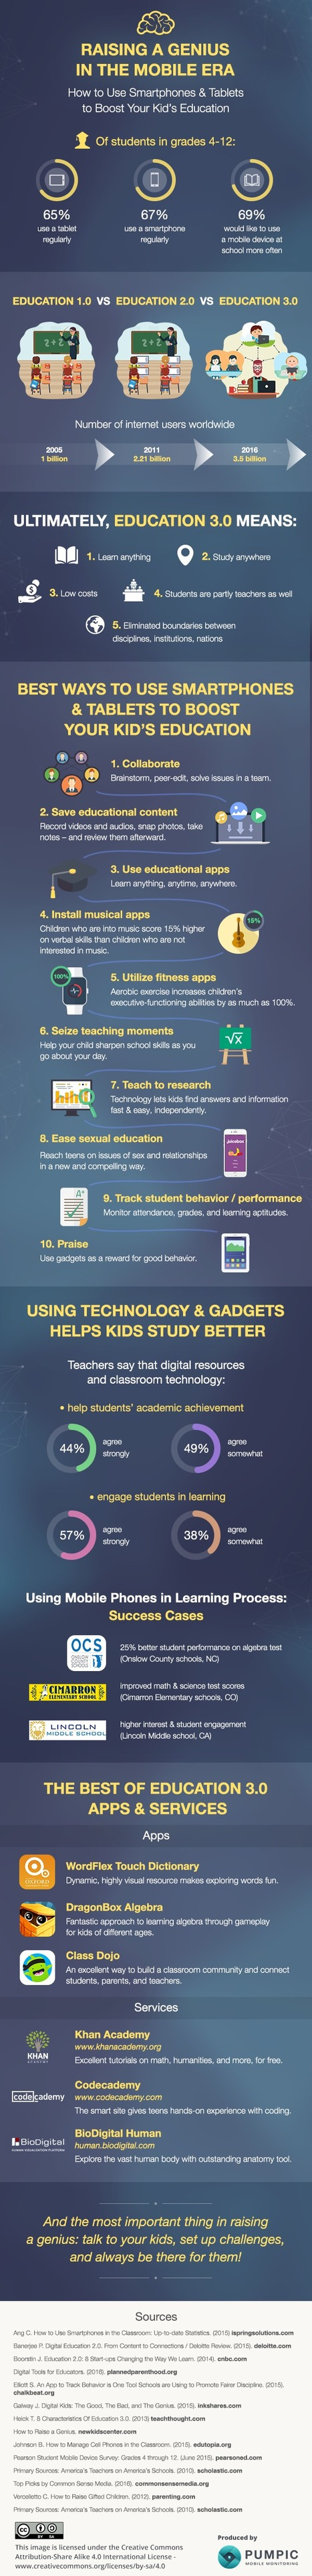 10 Good Ways to Boost Kids Learning Using Mobile Technology | Моя проба | Scoop.it